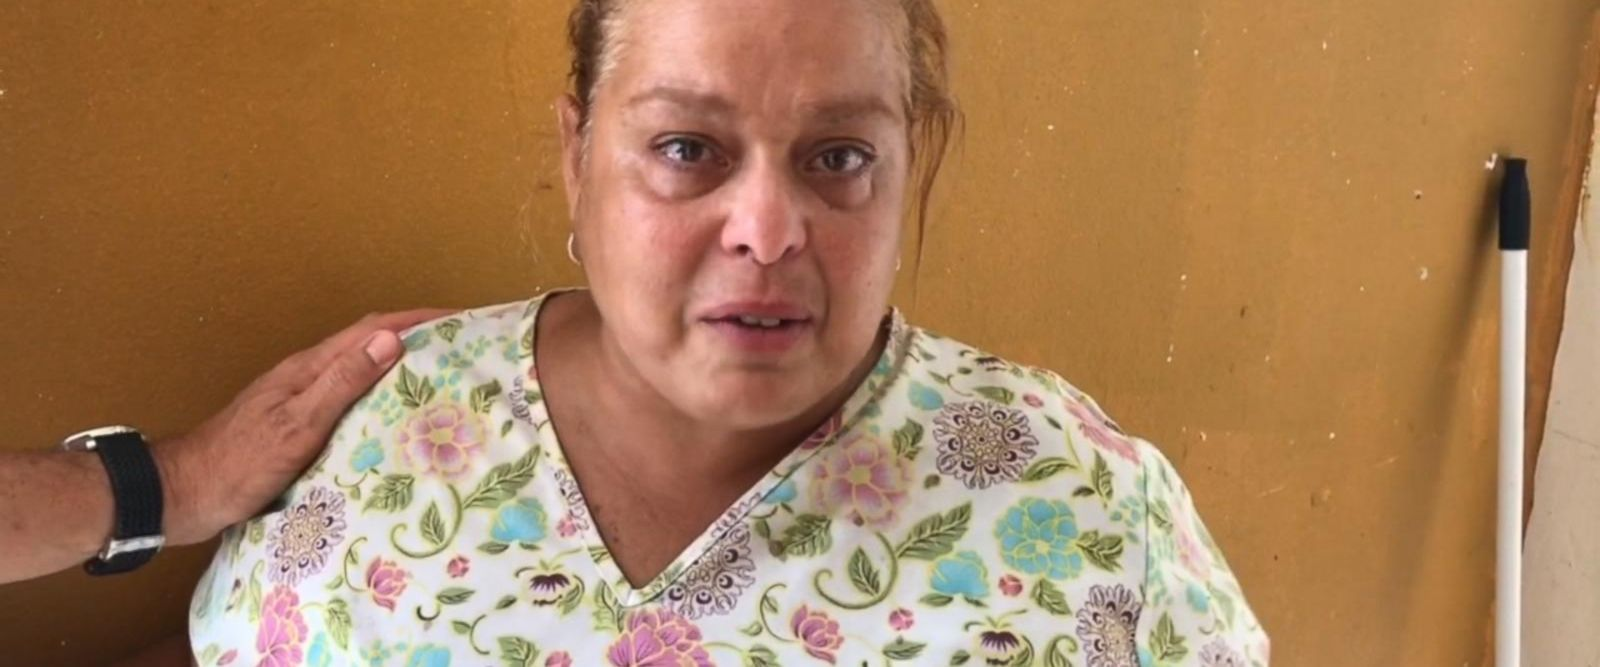 VIDEO: Desperation grows in Puerto Rico after Maria